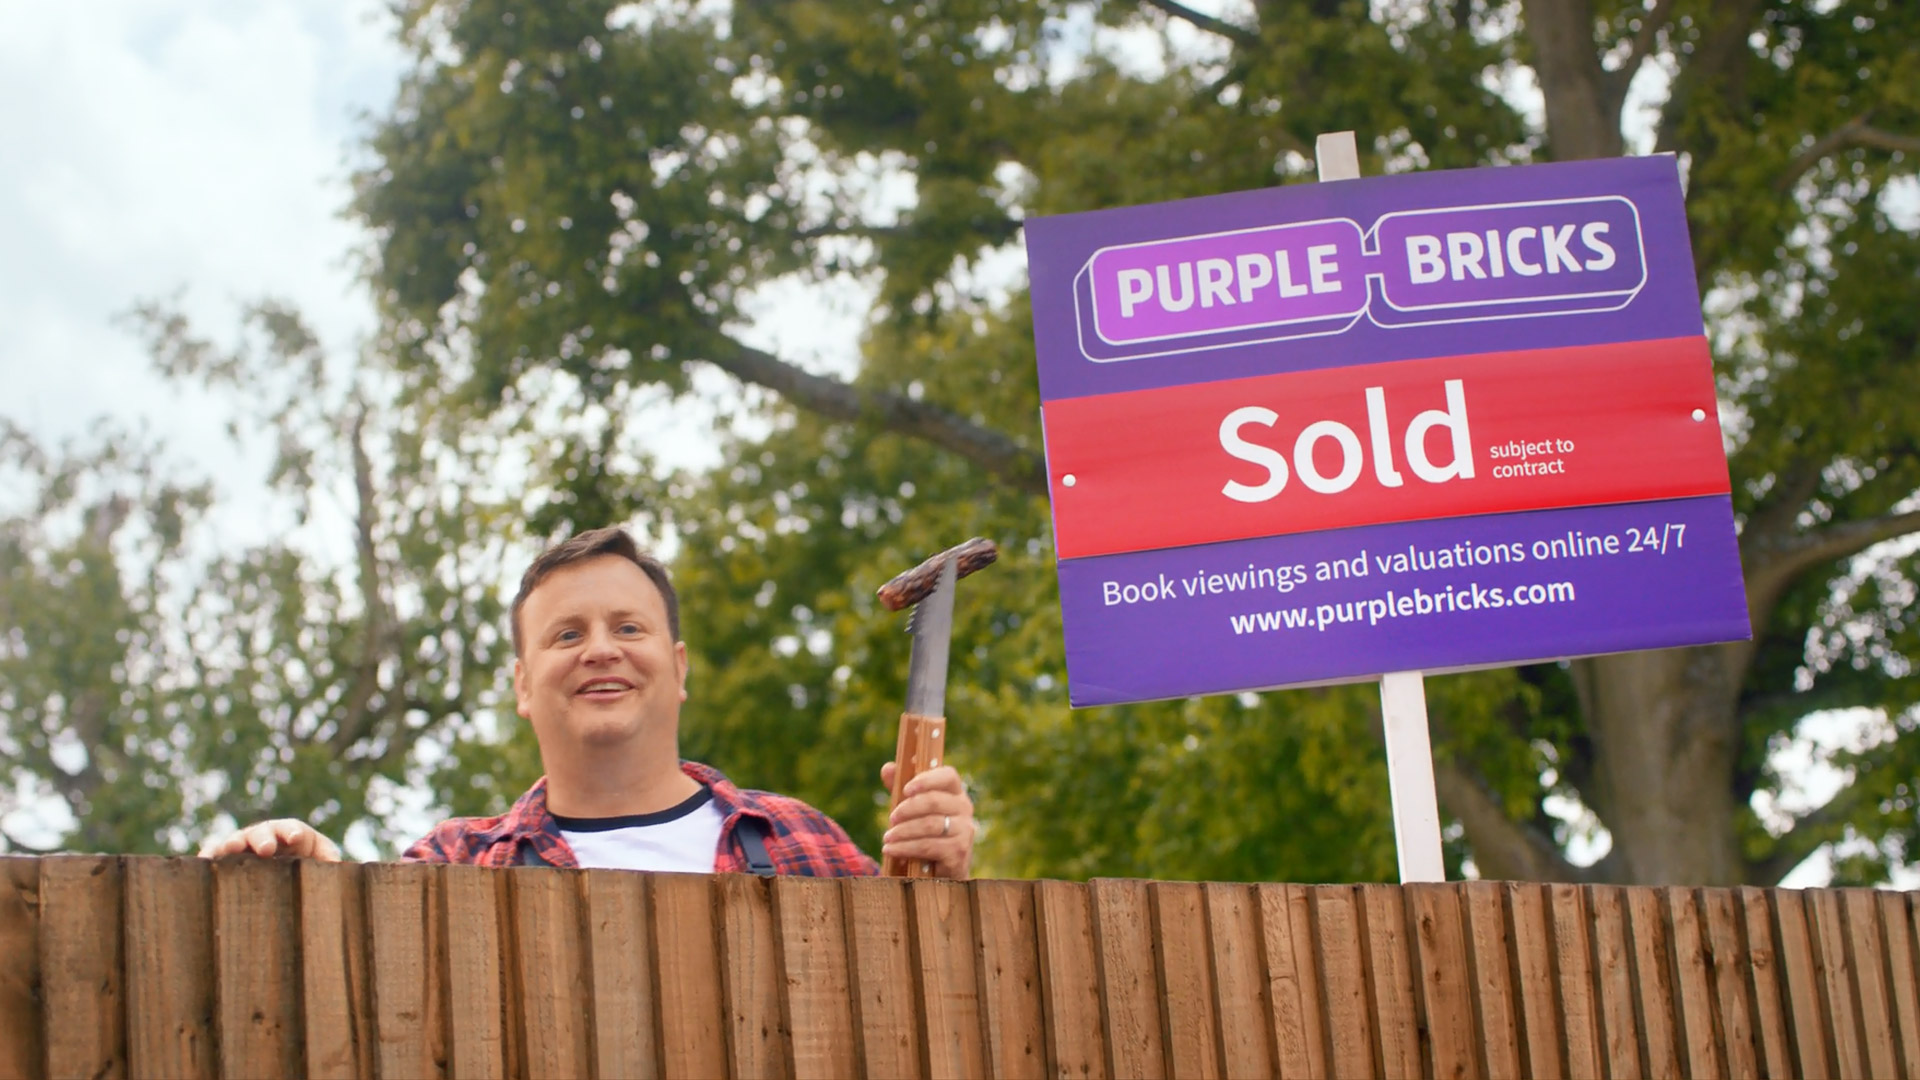 Purplebricks Group plc - Interim results 2018/19